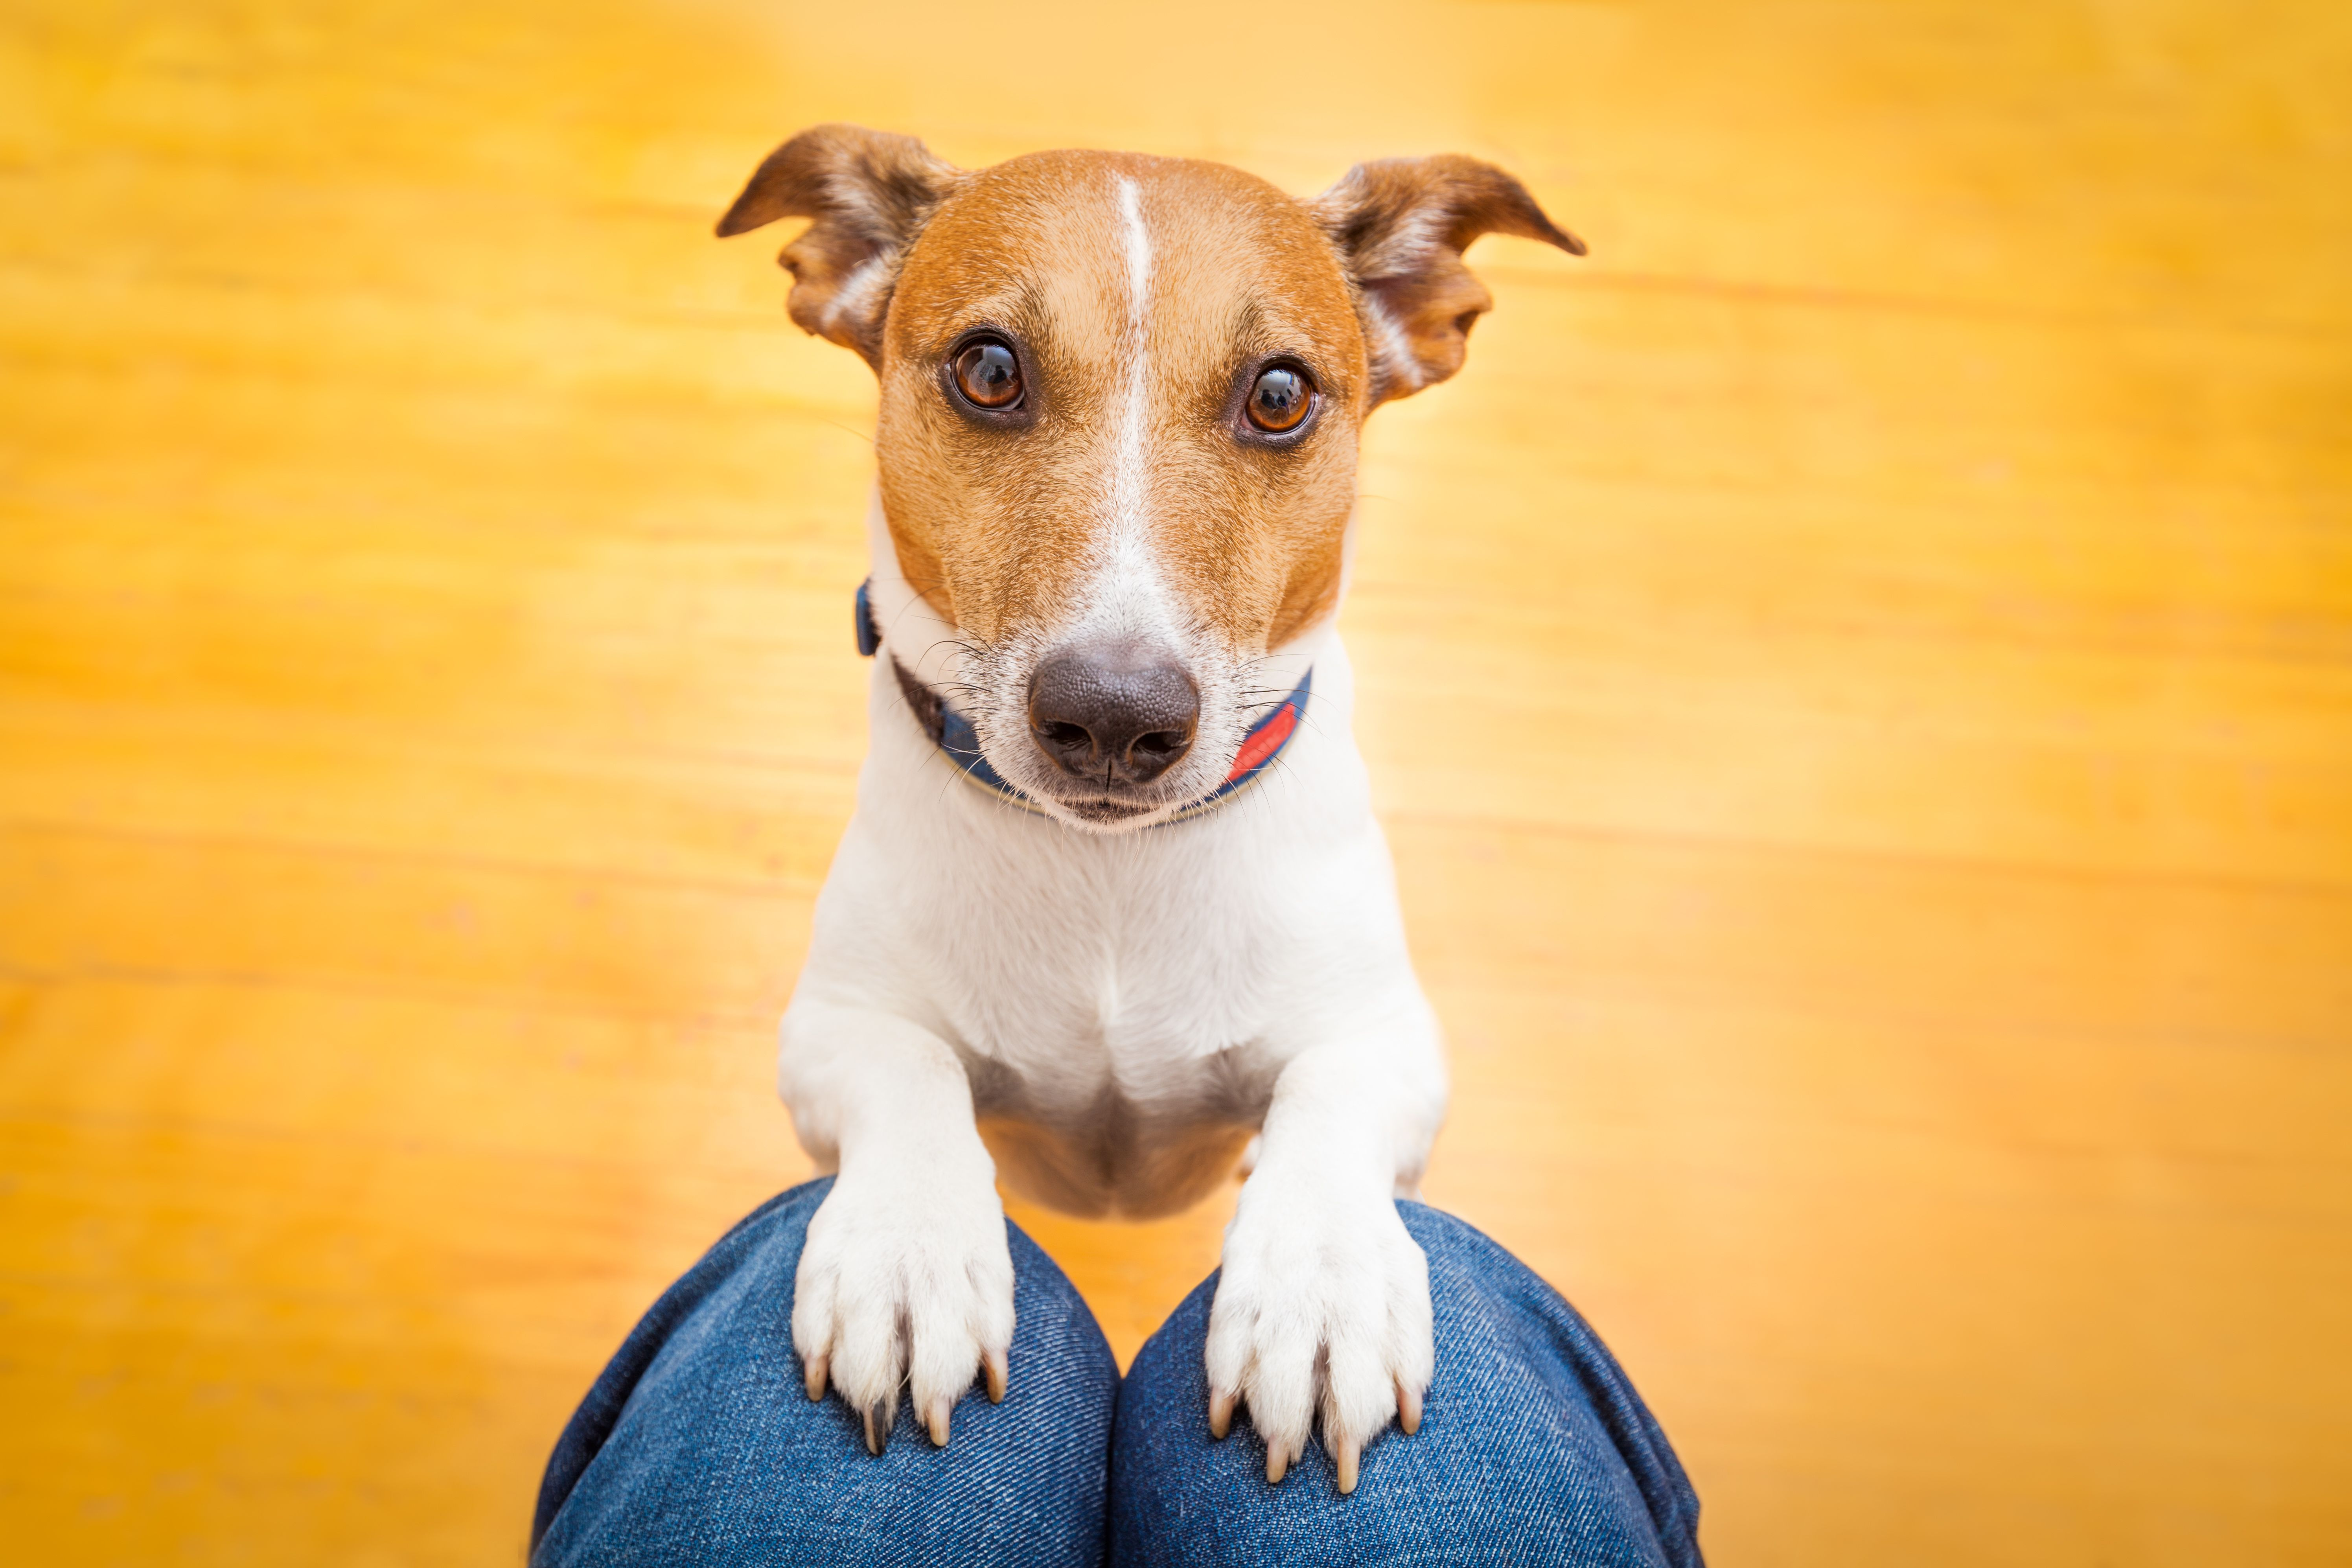 Hey Mommy Could You Please Download The Activ4pets App I Really Want It Pethealth Petcare Saddog Jackrussel Americand Dogs Dog Behavior Aggressive Dog